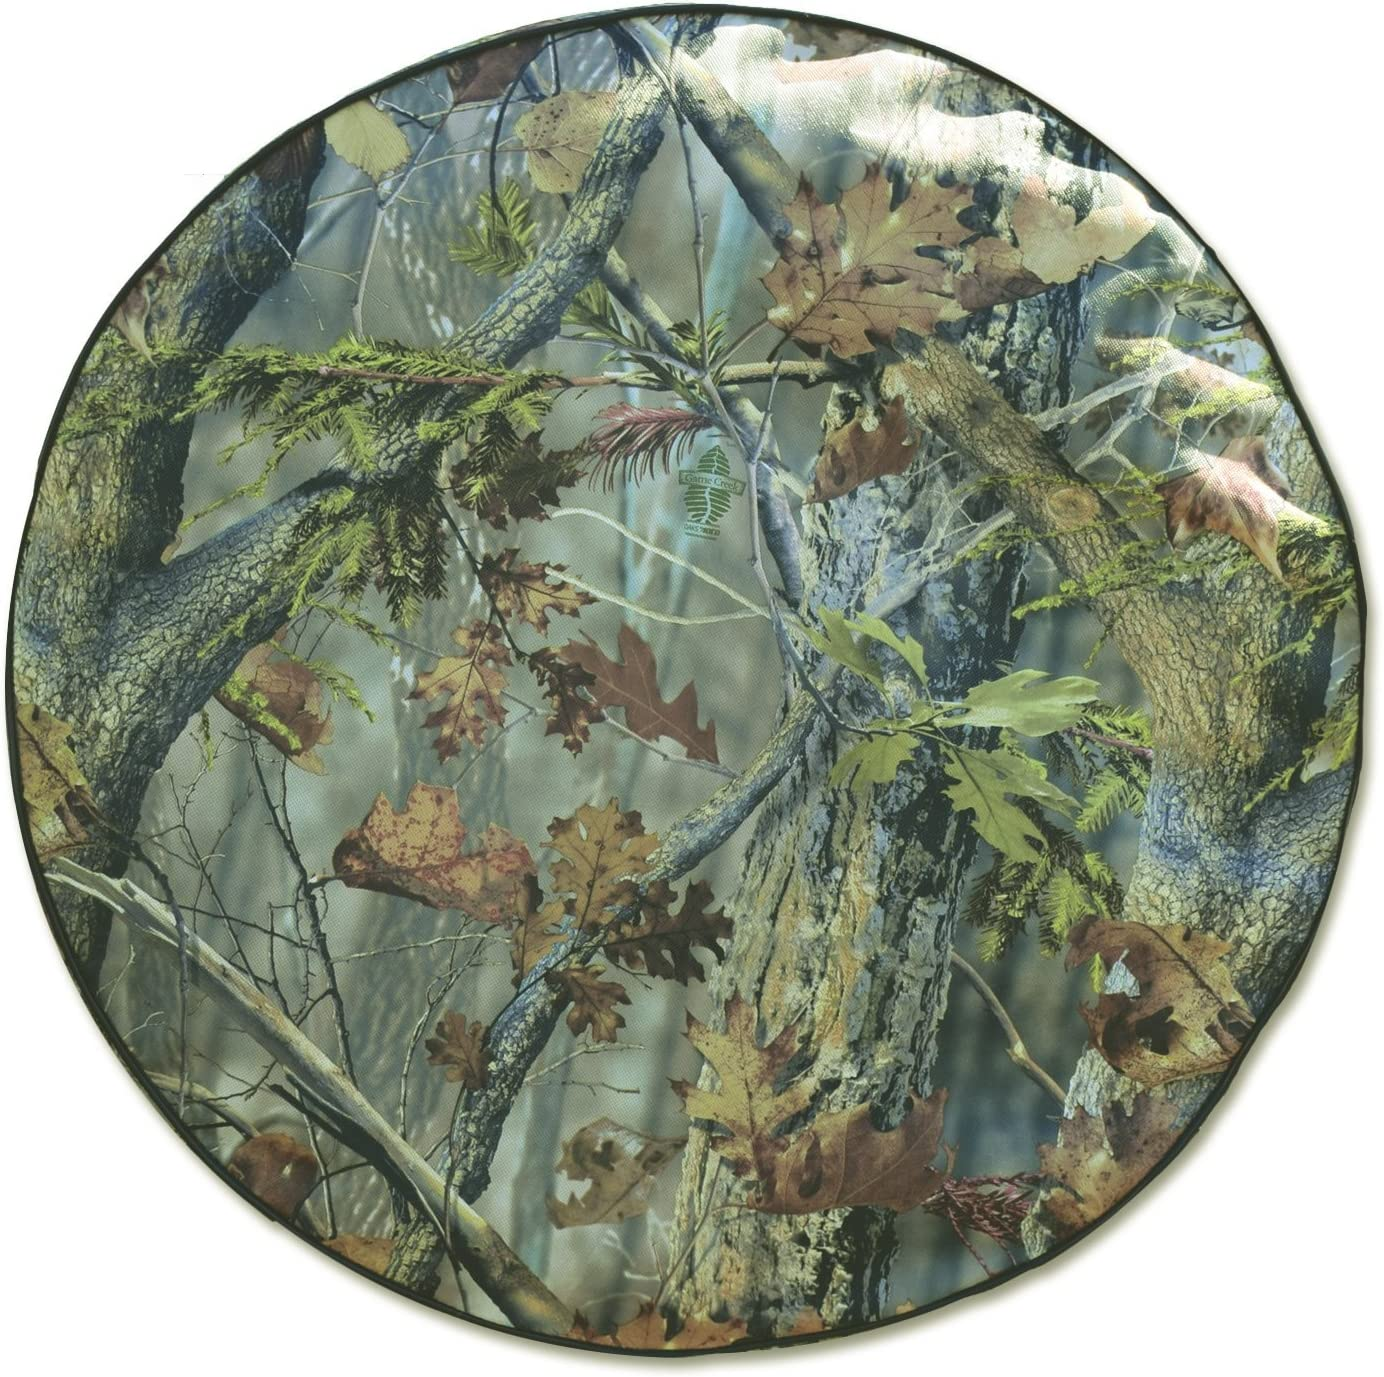 ADCO 8755 Camouflage Game Creek Oaks F Super popular specialty store All stores are sold Tire Fits Spare 2 Cover